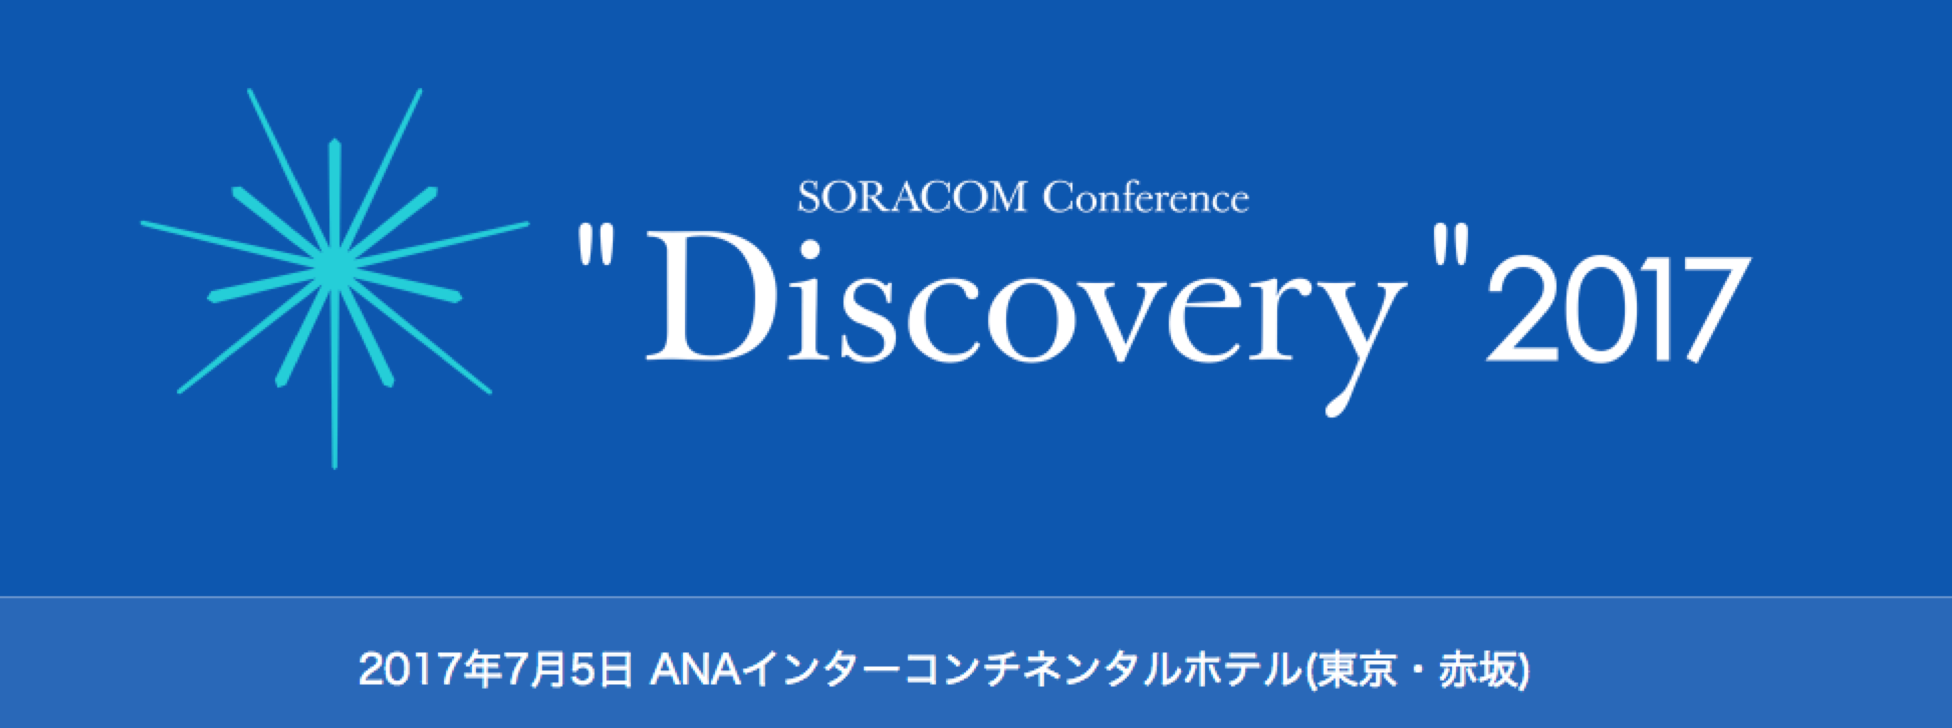 SORACOM Conference